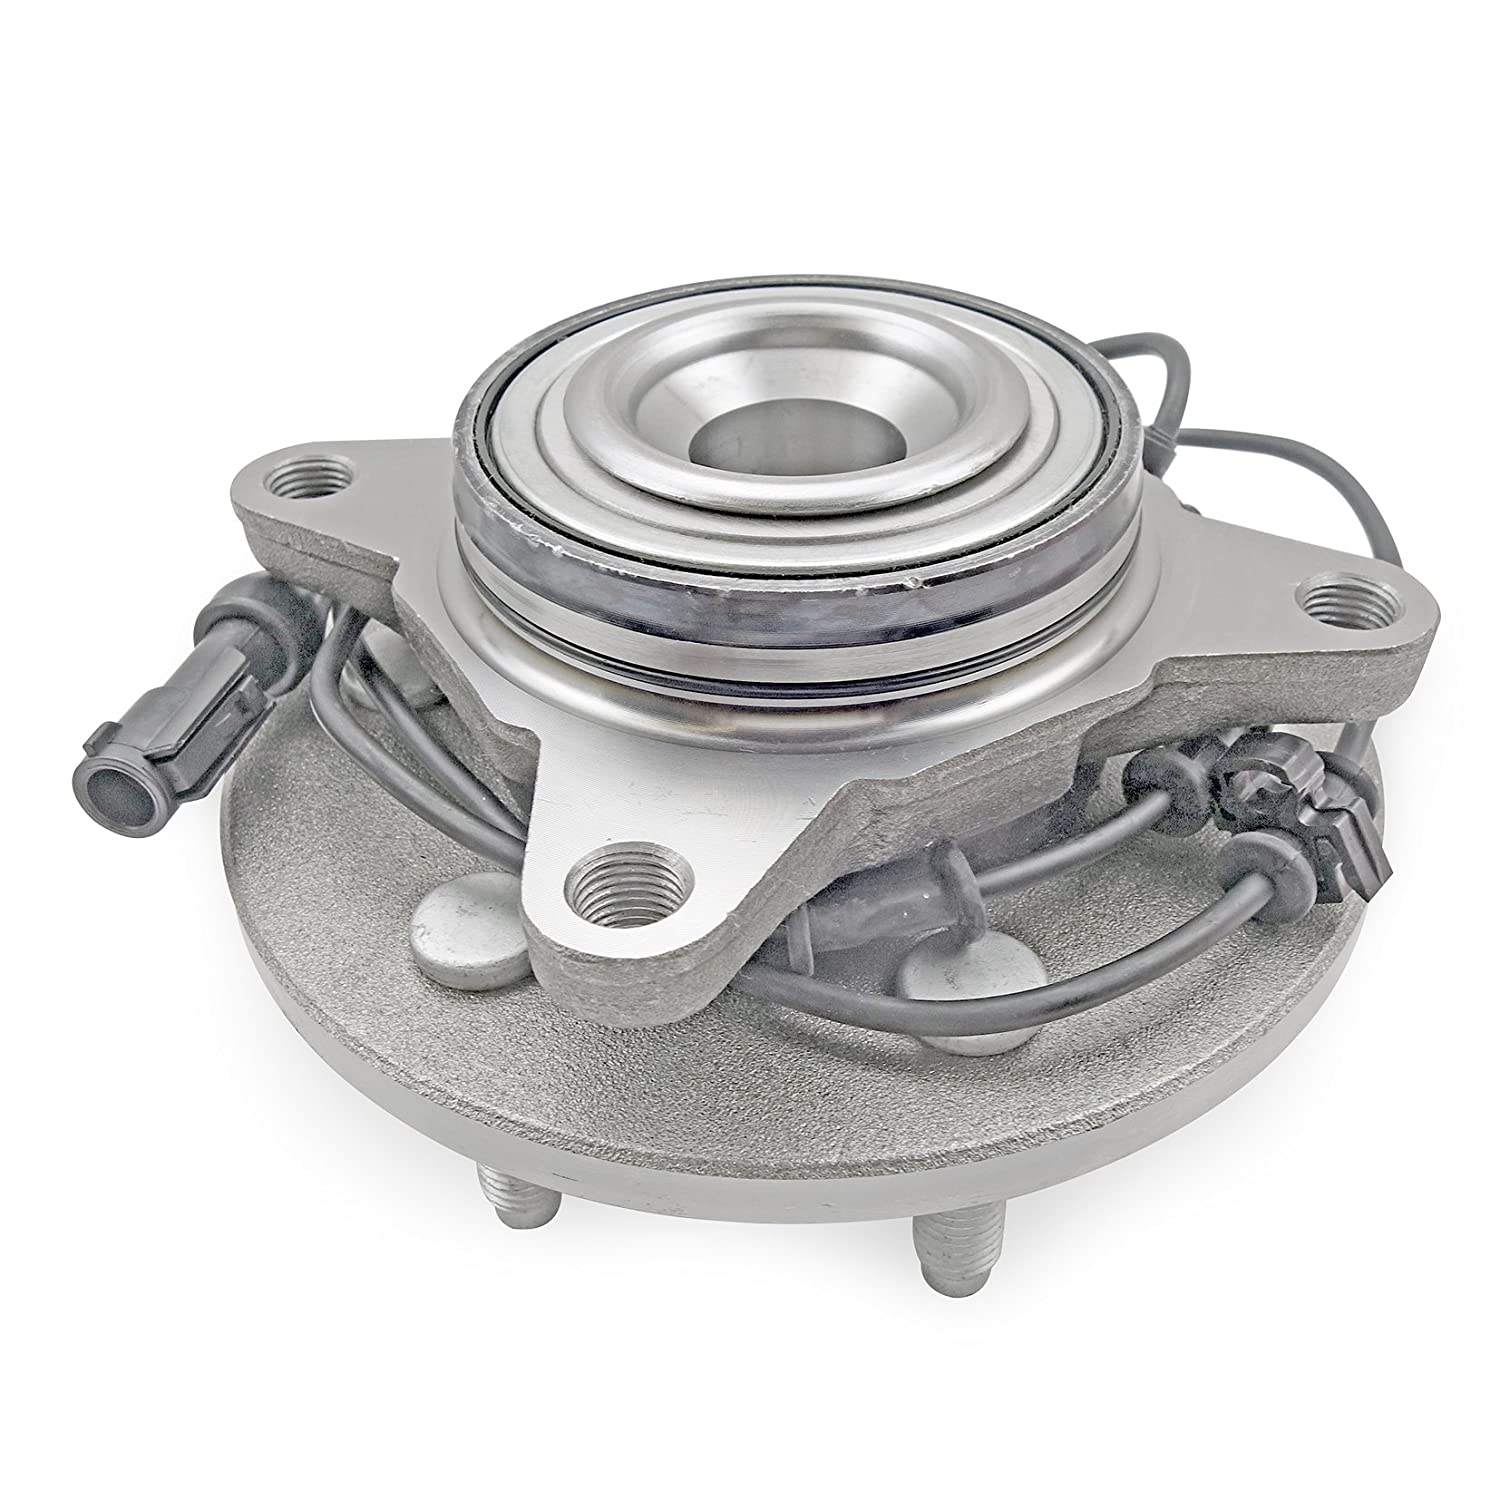 CRS NT541001 New Wheel Bearing Hub Assembly, Rear Driver (Left)/ Passenger (Right), for 2003-2006 Ford Expedition,4WD/ AWD/RWD, Lincoln Navigator,4WD/ RWD